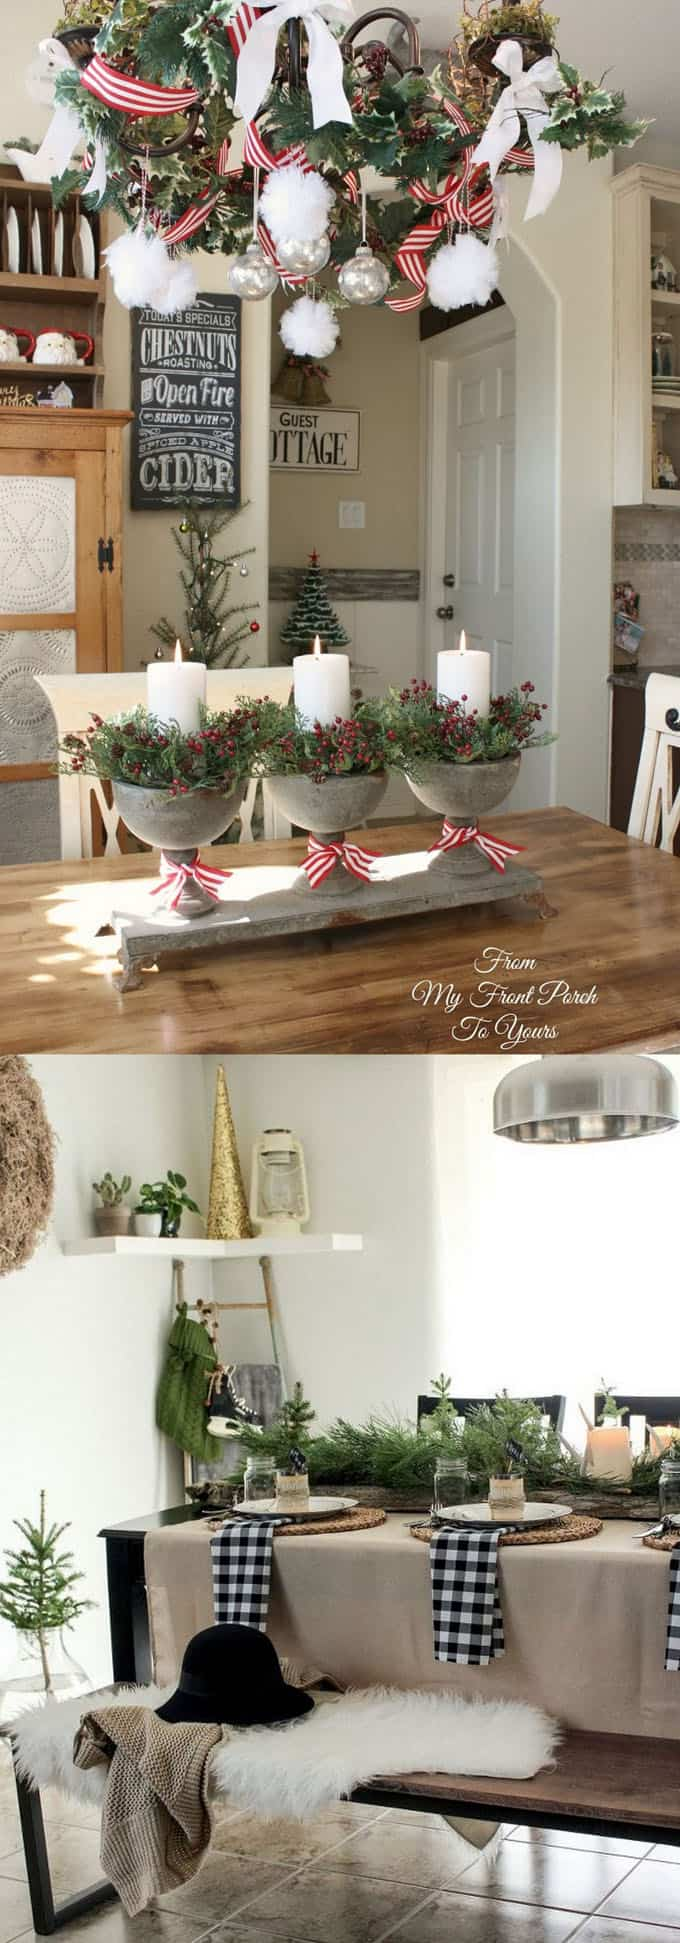 Look For Ways To Add Festive Christmas Decorations Not Just On A Kitchen Table But Also Above And Around The Via From My Front Porch Yours